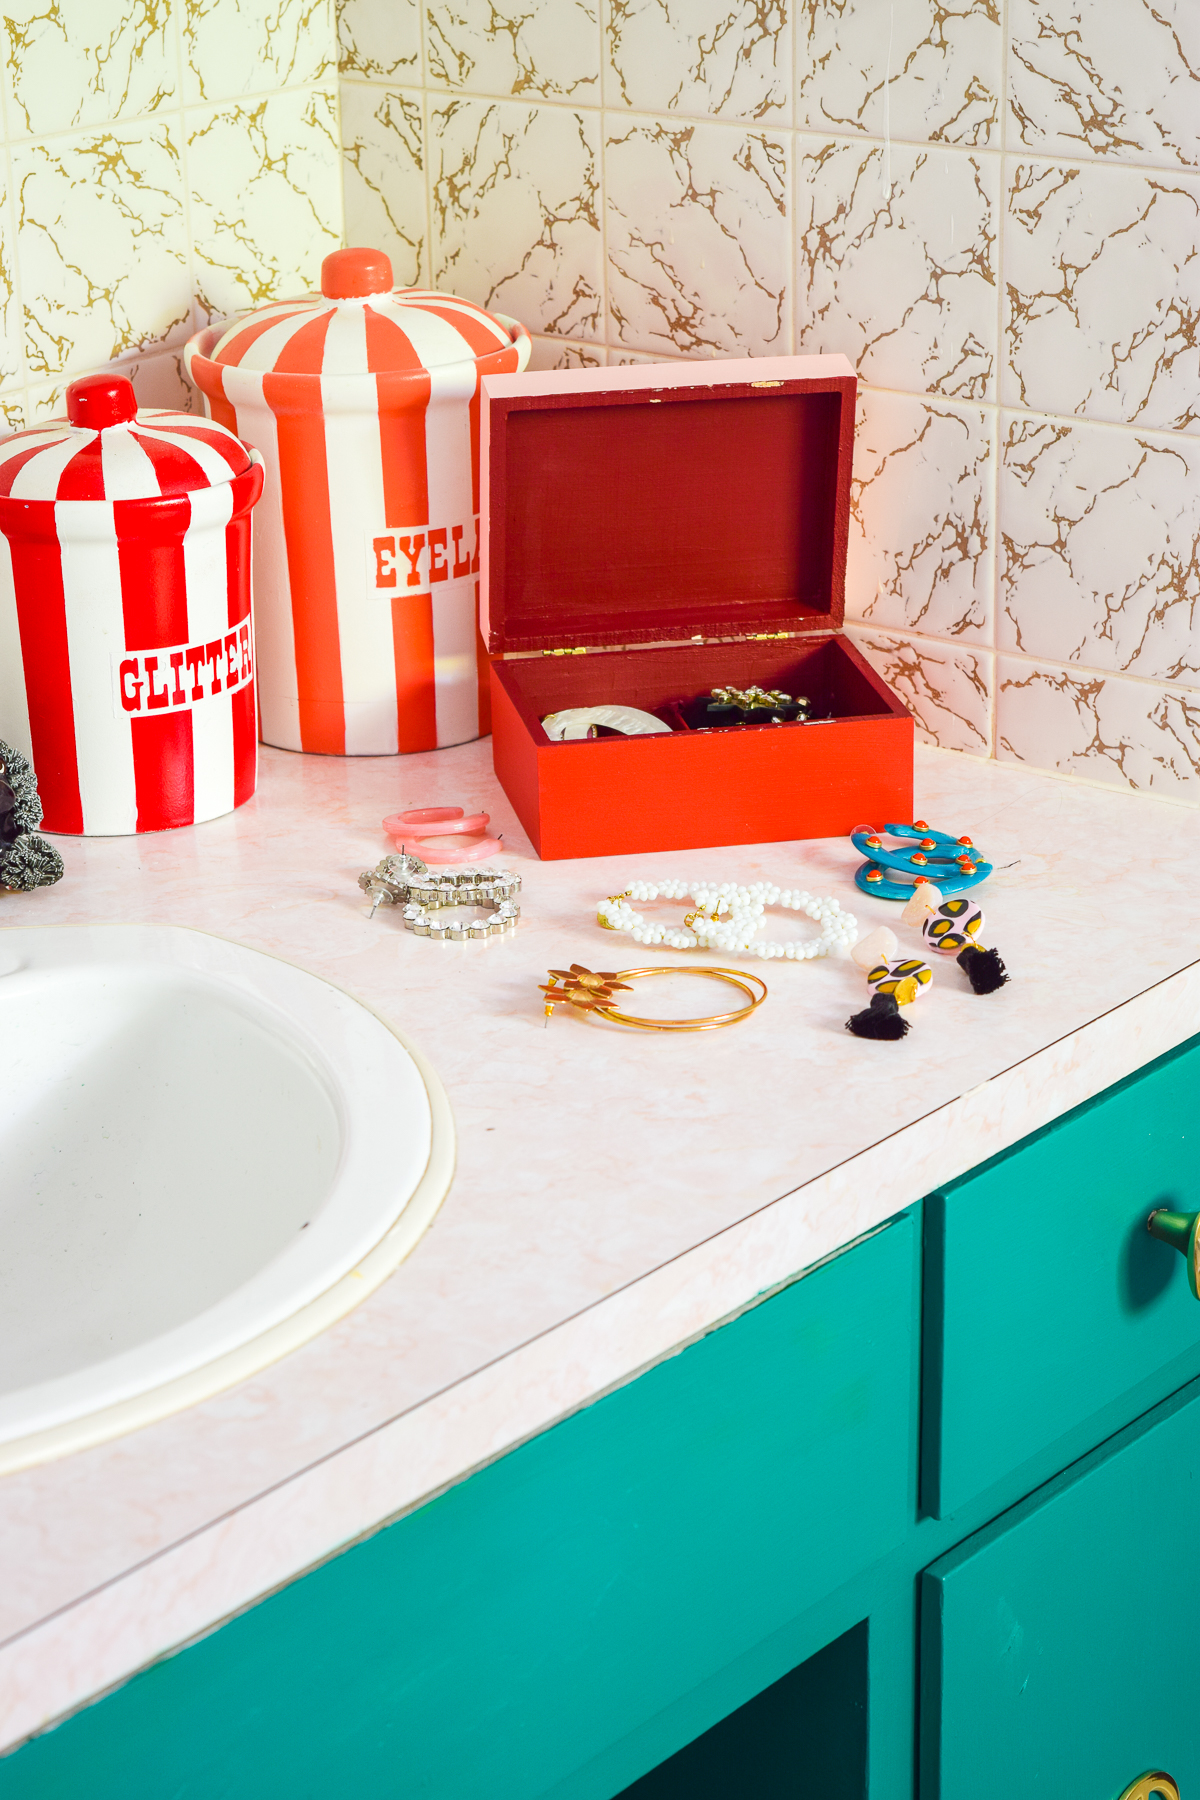 How to Remodel A Bathroom On A Budget - the eternal question! Let me tell you, it starts with paint, new hardware, and a shopping your house for decor.